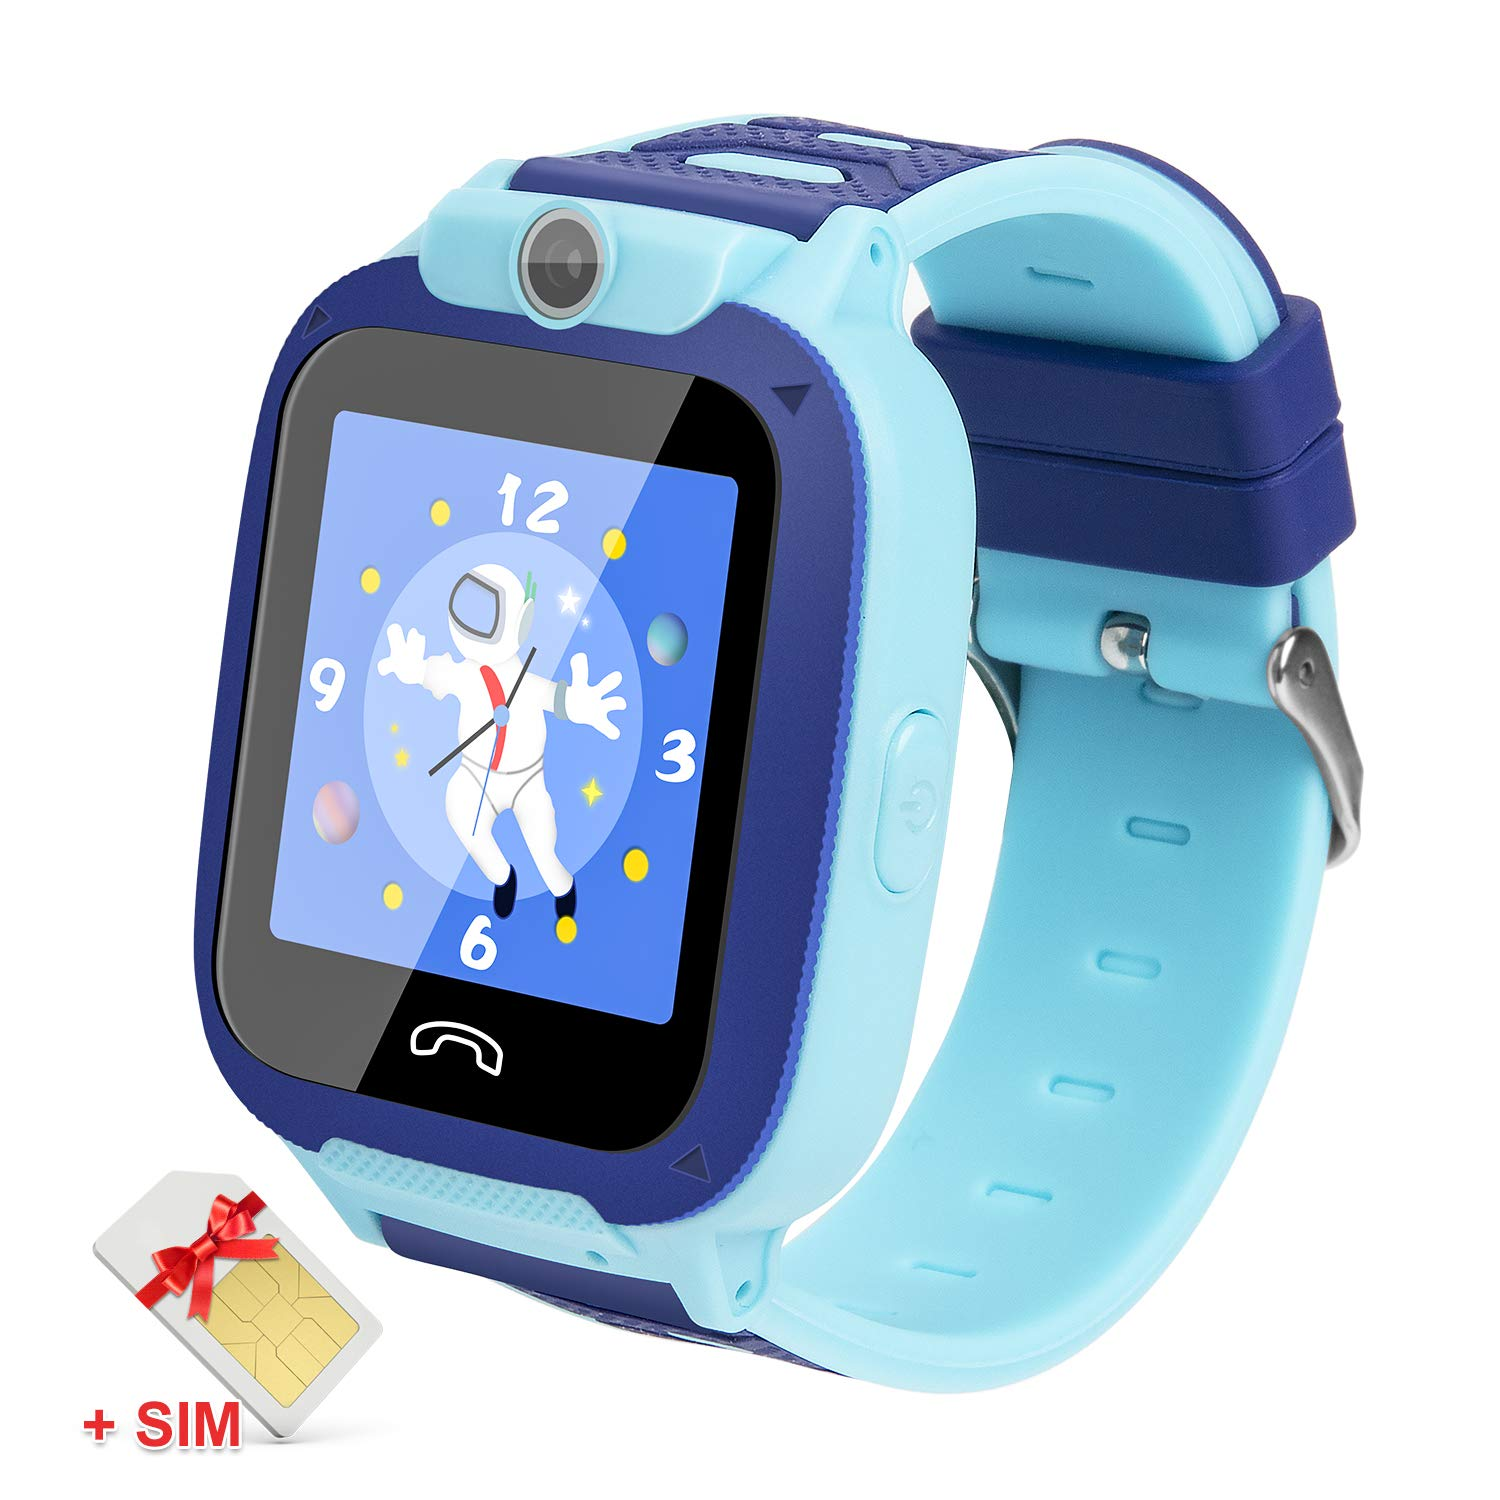 Ralehong Kids Smartwatches IP68 Waterproof LBS/GPS Tracker Smart Watch Phone,Calls SOS Camera Voice Chat Touch Screen for 3-13 Years School Girls Boys ...